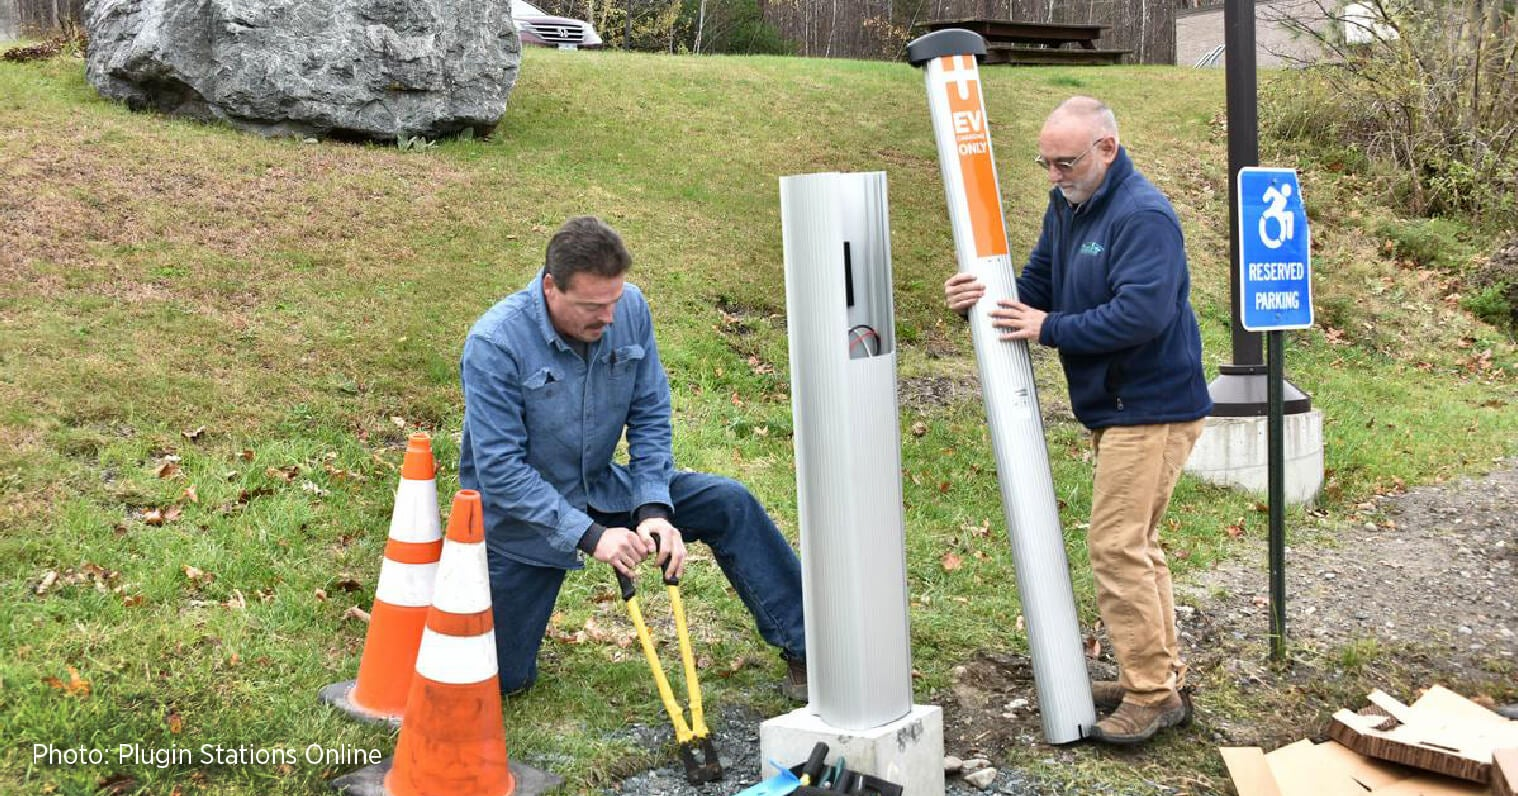 John Doran and an employee installing a ChargePoint station